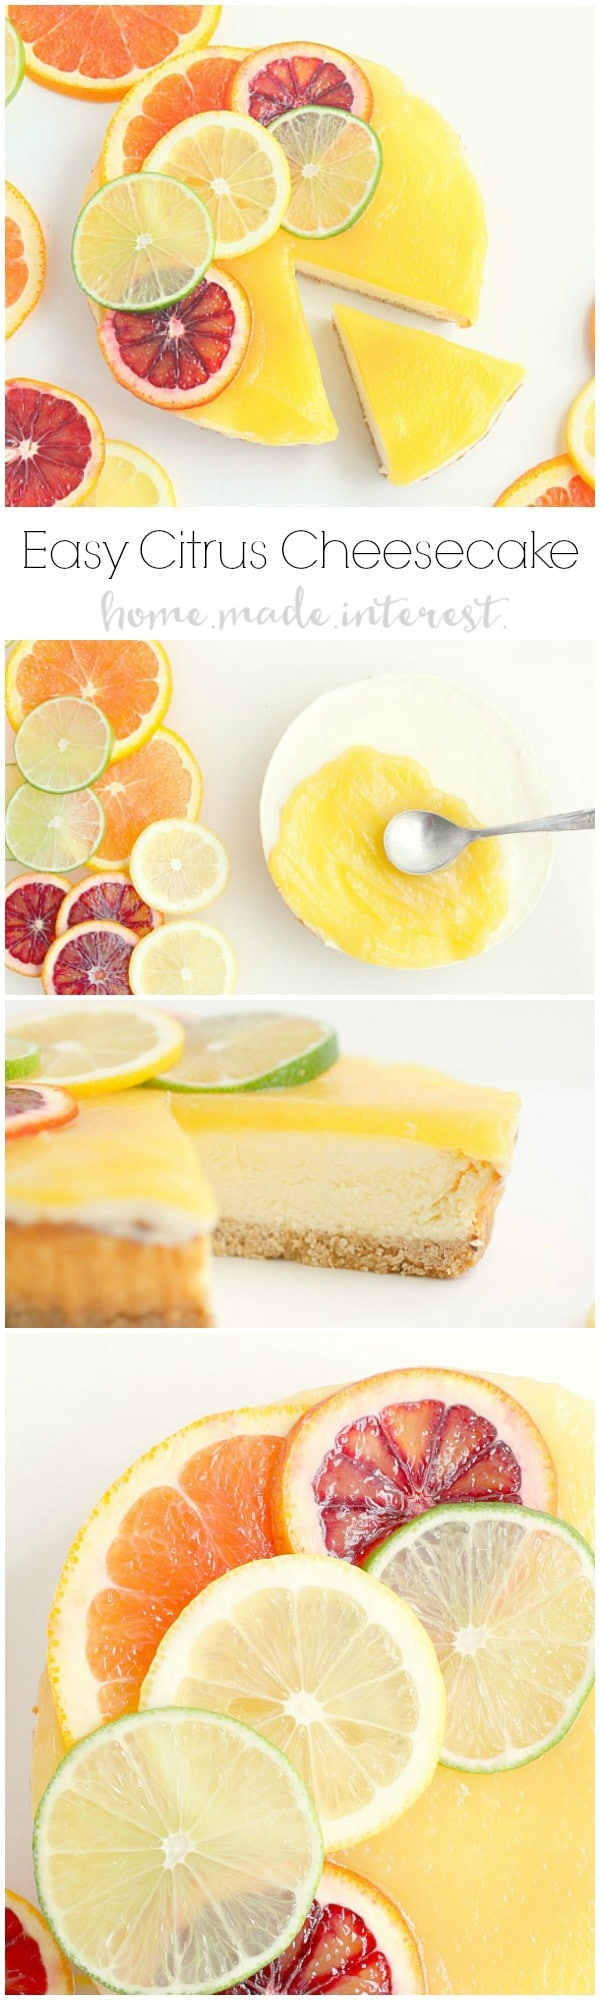 A simple lemon curd and fresh slices of blood oranges, lemons, and limes dress up this Sara Lee cheesecake for a fast spring and summer dessert.